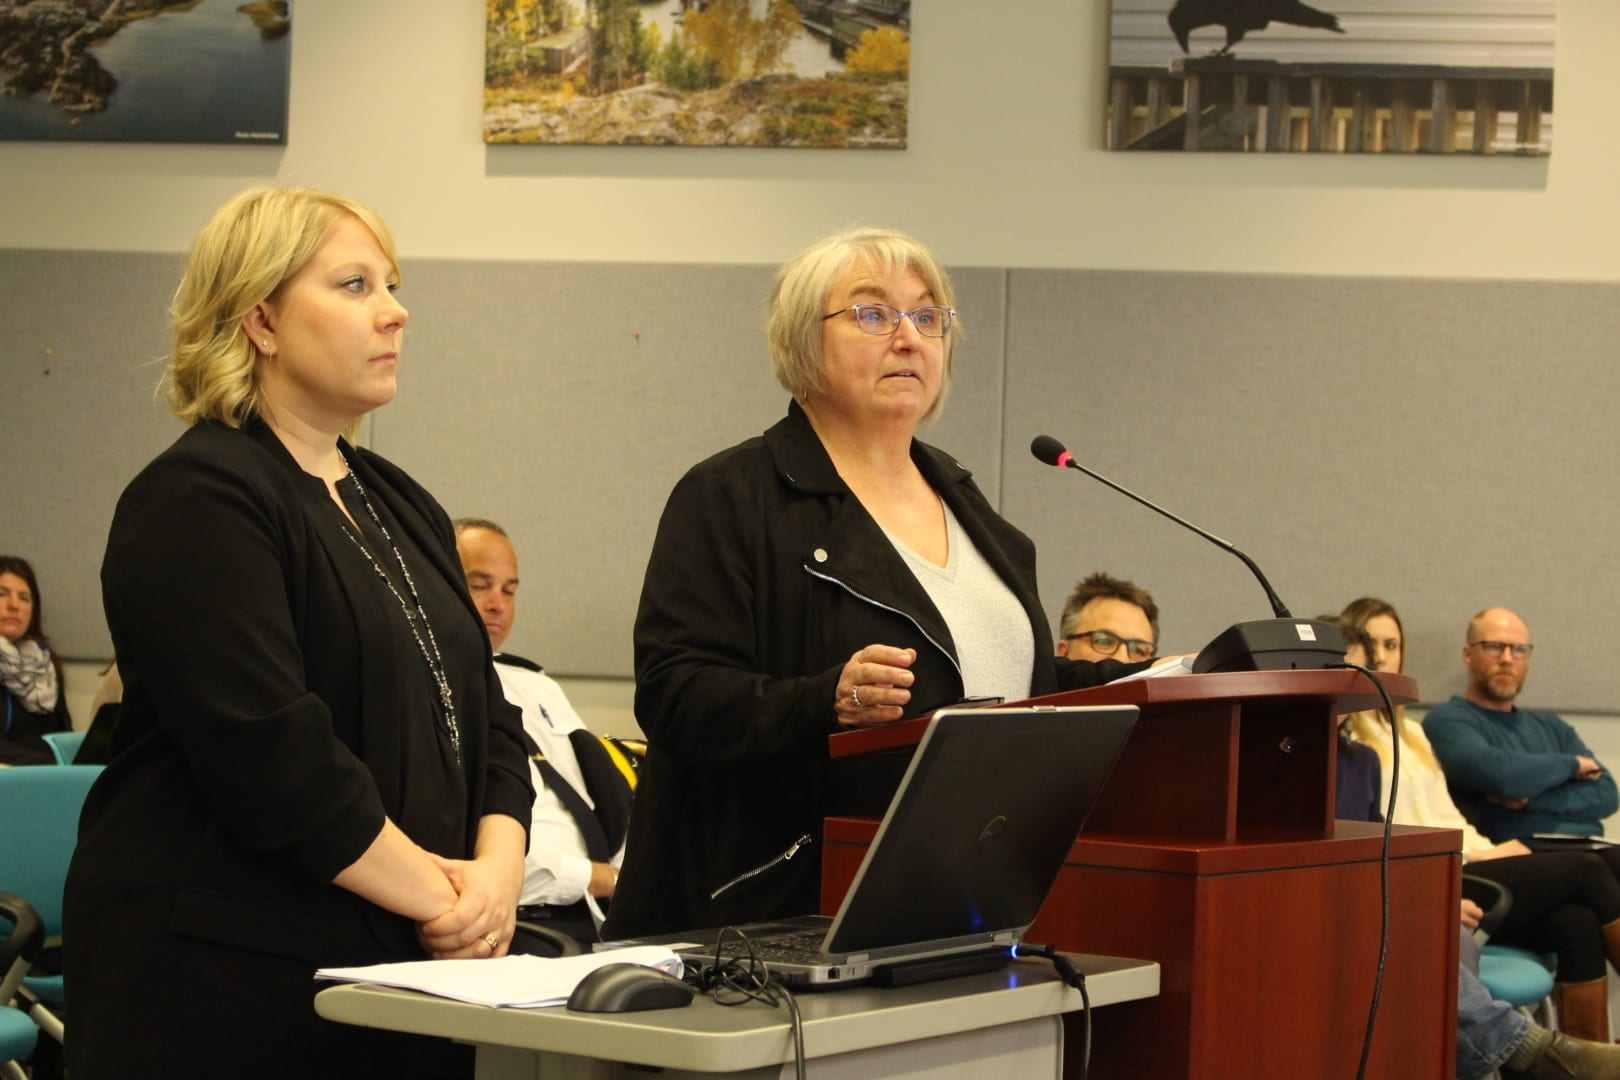 Nathalie Nadeau, left, and Denise McKee, executive director of NWT Disability Council, made their case for the positive impact the sobering centre and day shelter is having on the community. Brett McGarry/ NNSL Photo